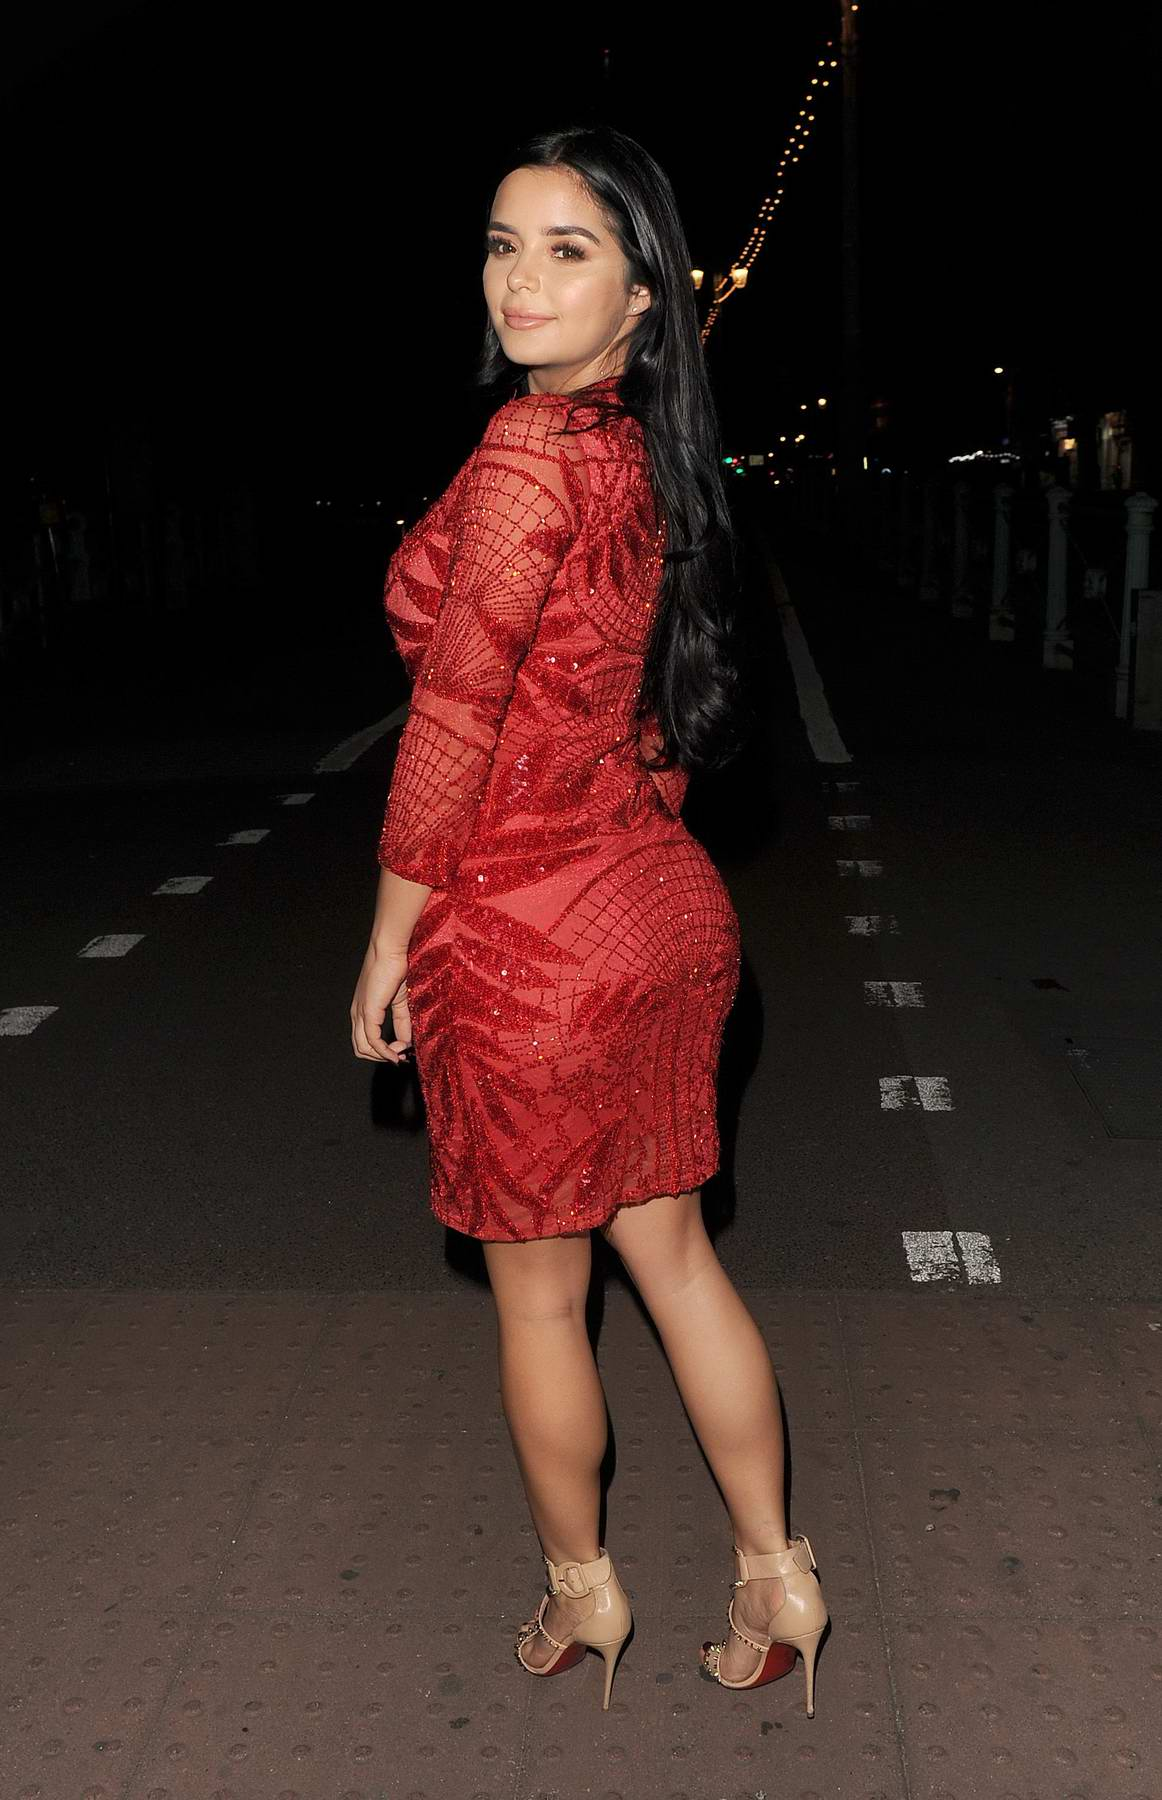 Demi Rose Mawby in a sheer red dress while out at Shoosh nightclub in London